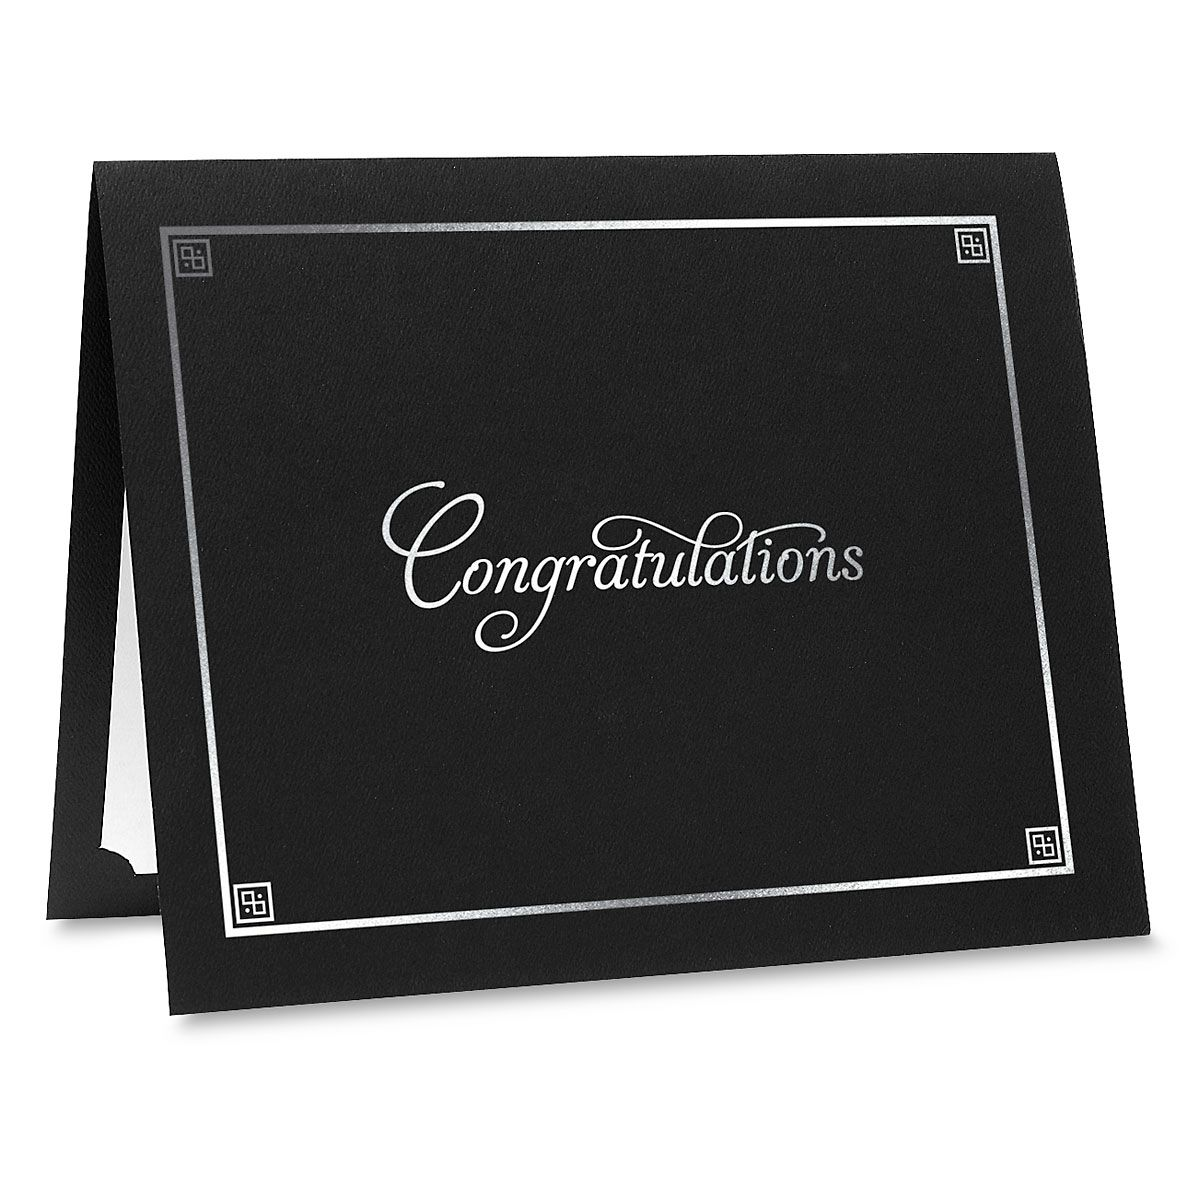 Congratulations Black Certificate Folder with Silver Border - Set of 25